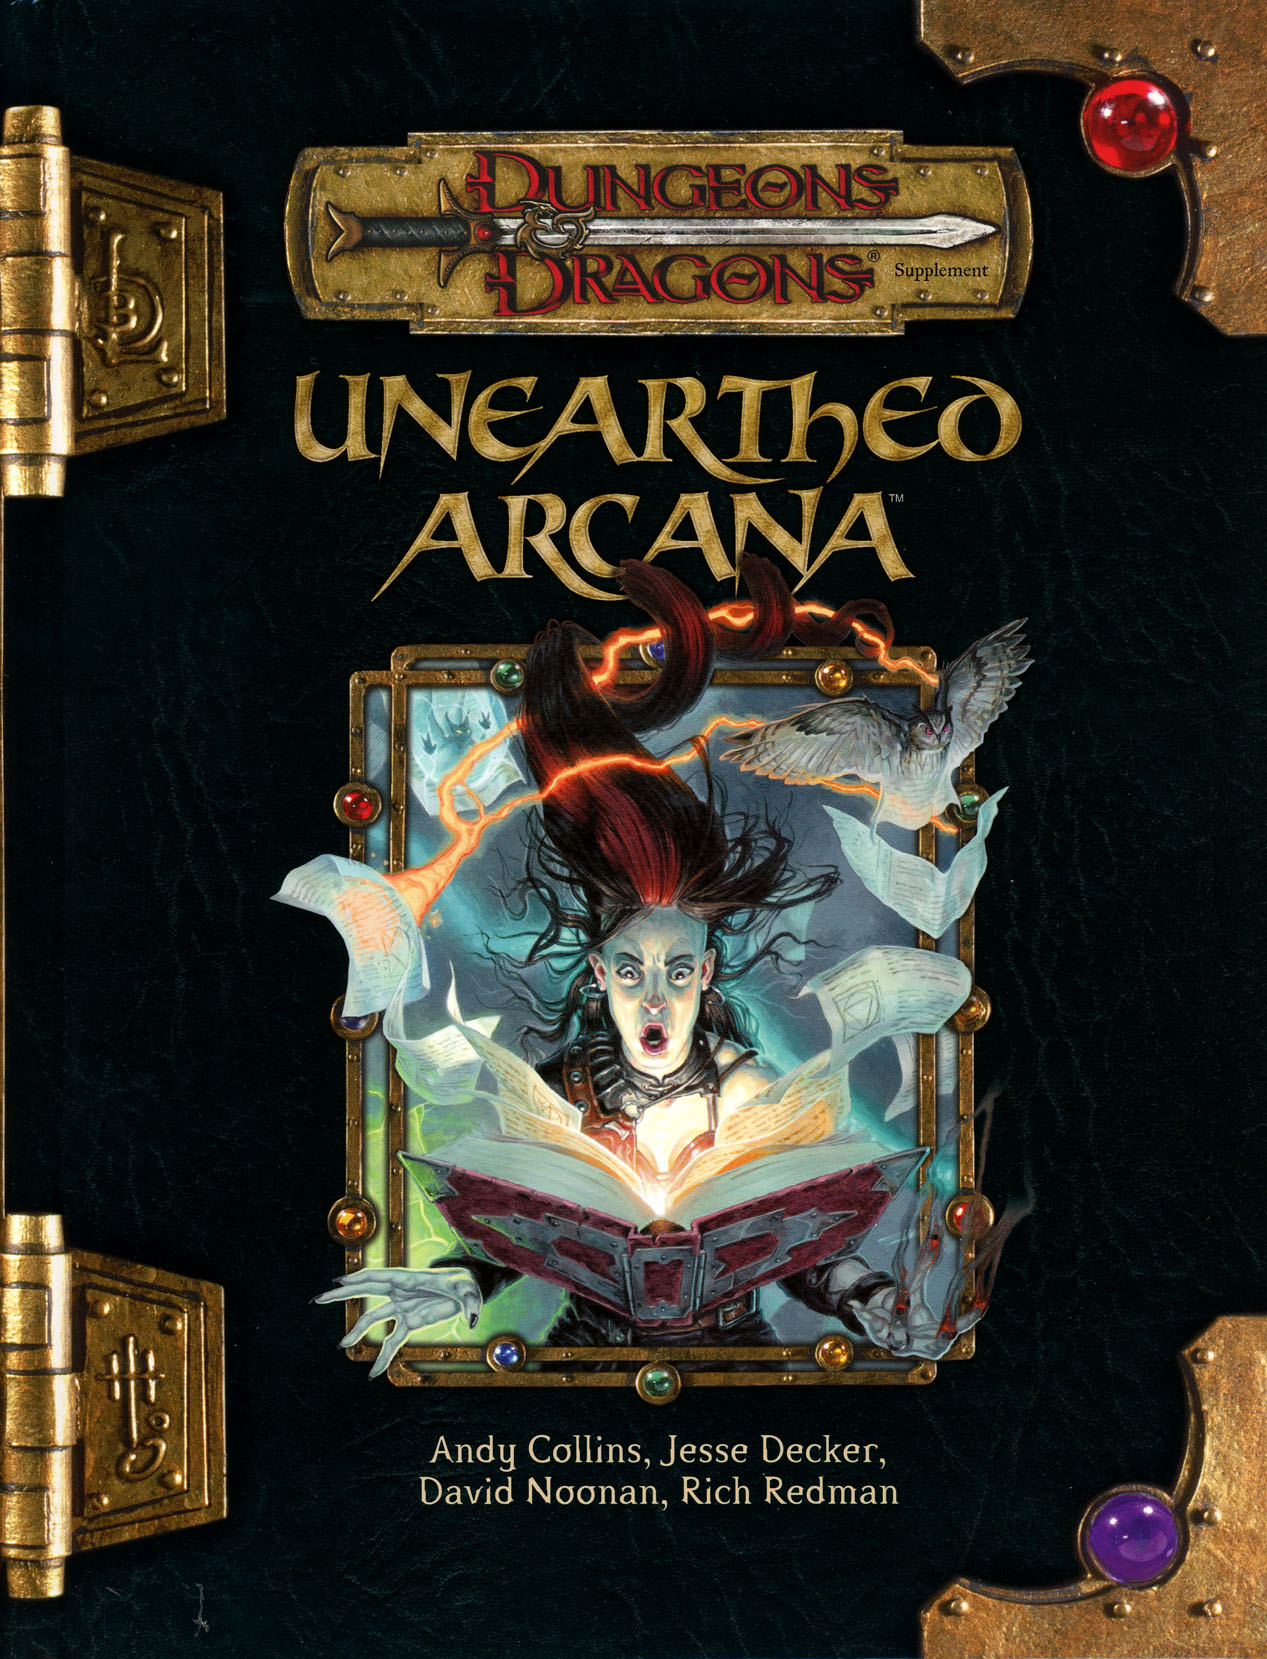 Unearthed Arcana   Forgotten Realms Wiki   FANDOM powered by